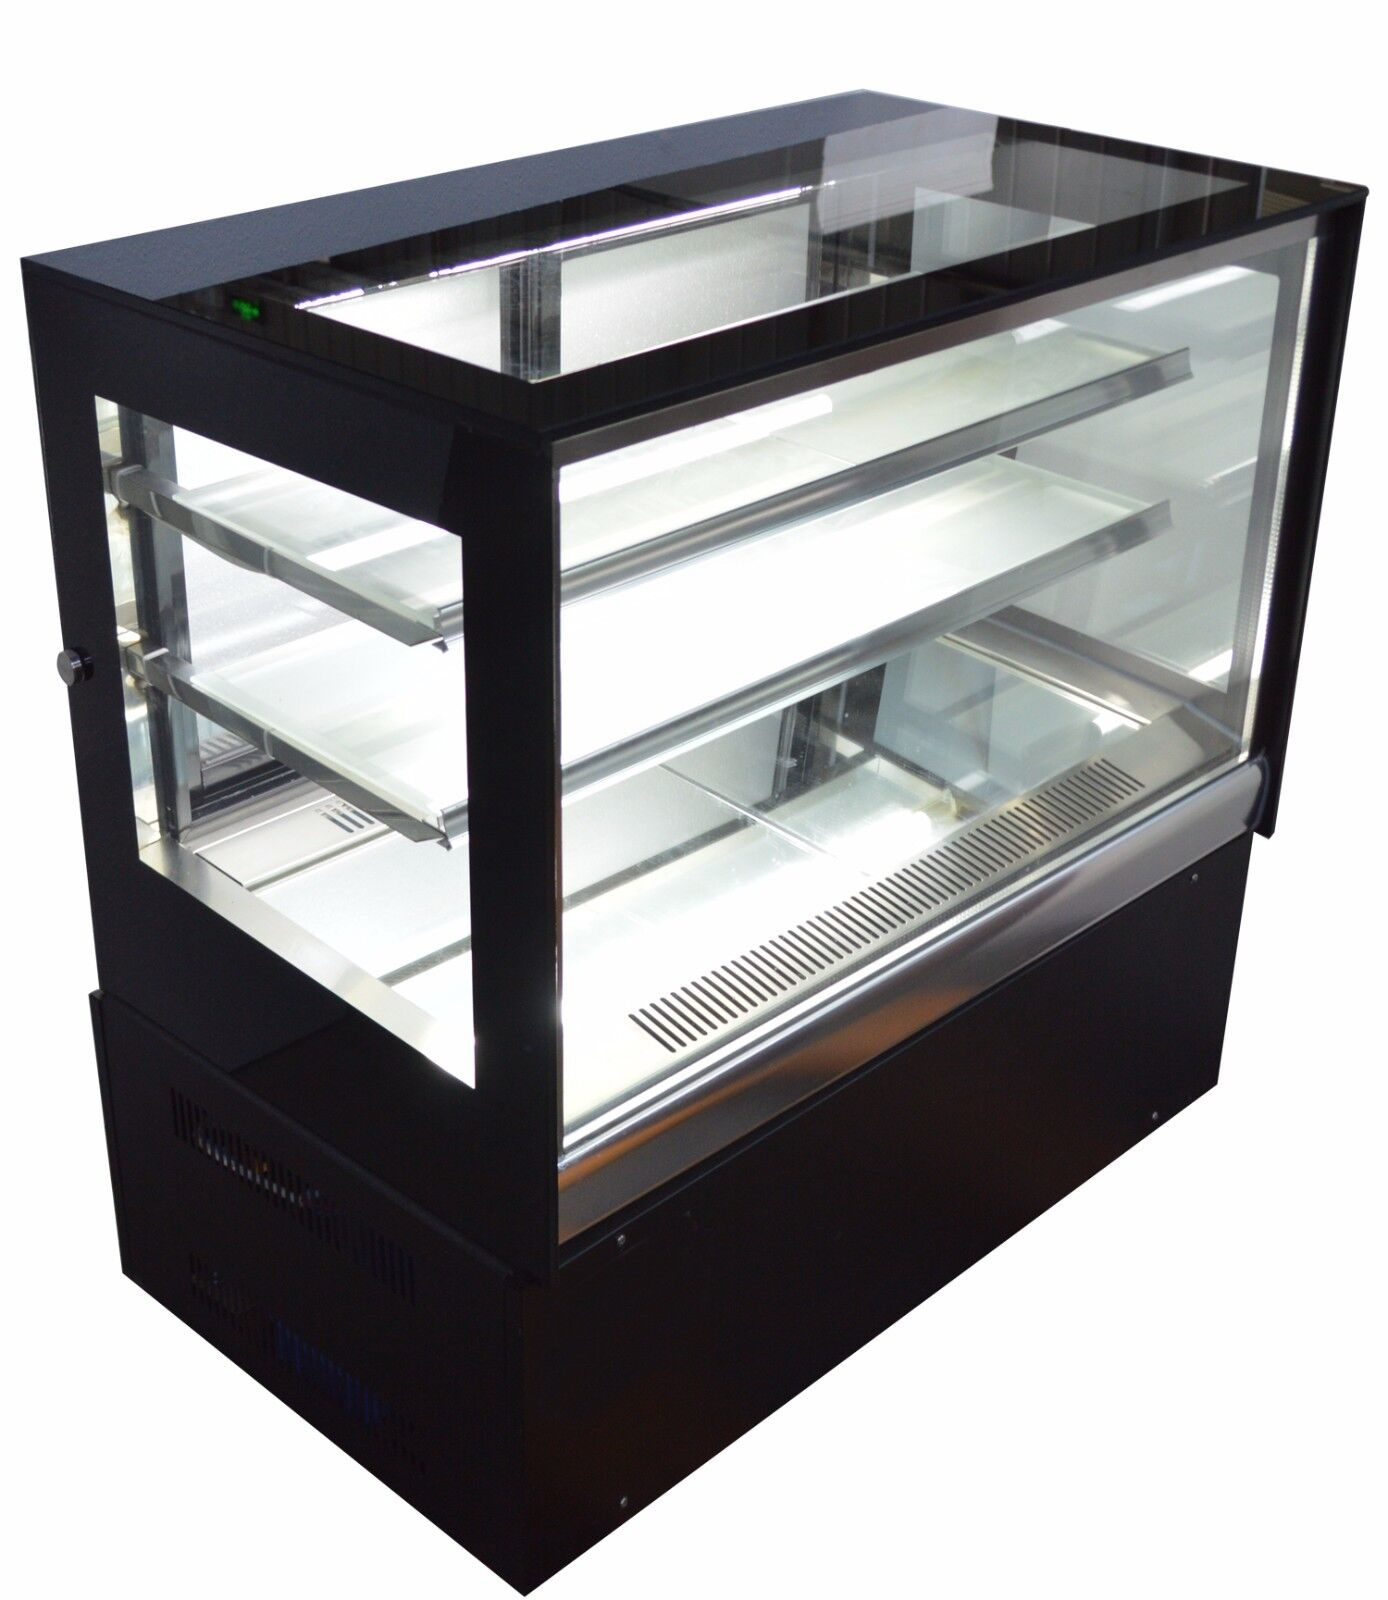 Bakery Display Cabinet Countertop Refrigerated Cake Showcase Commercial Bakery Display Cabinet 220v